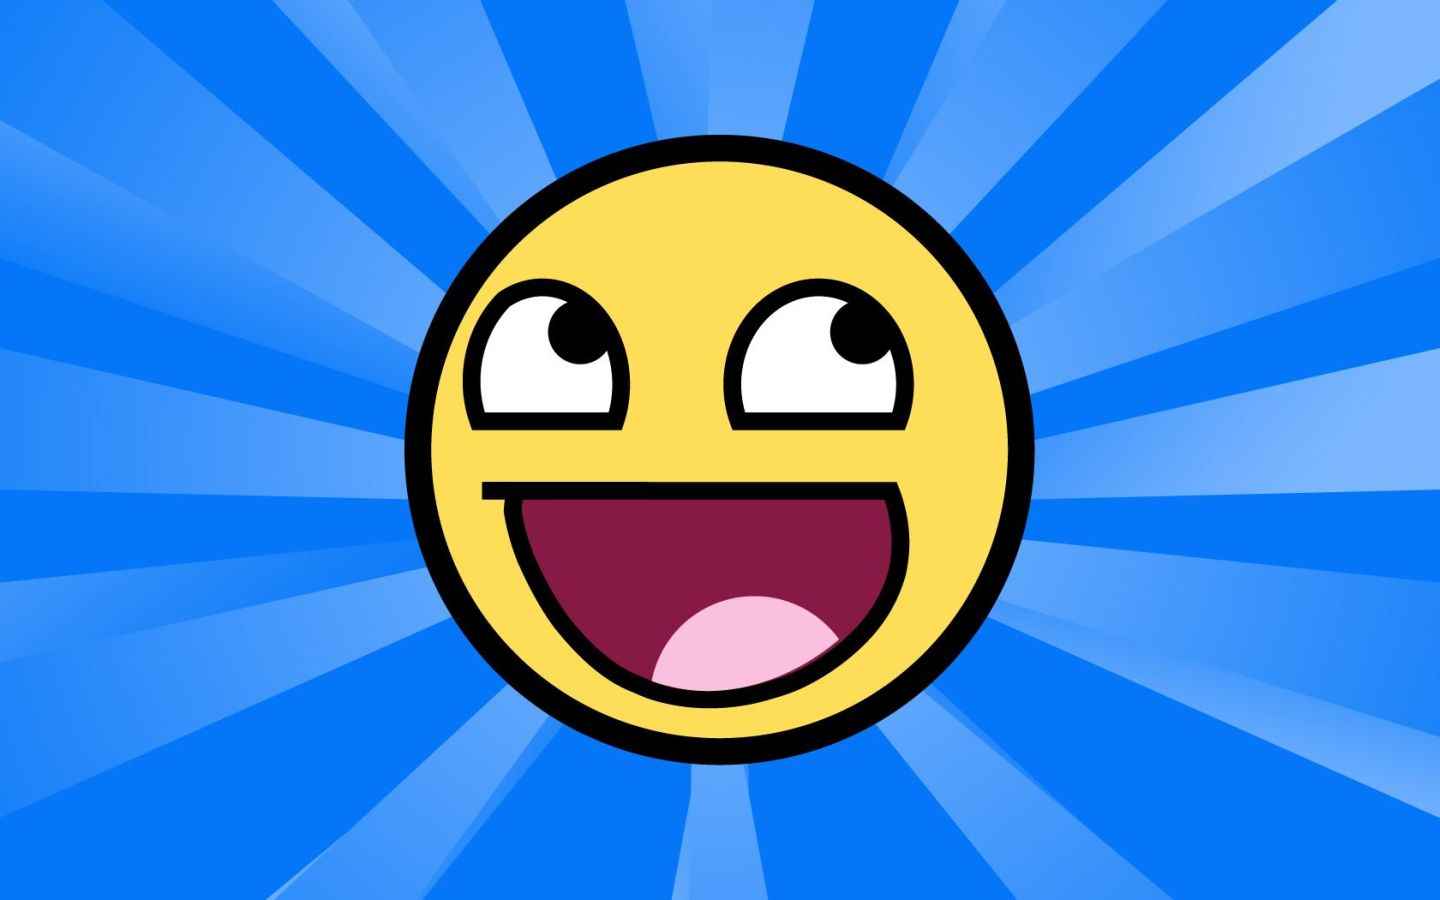 Free Widescreen Smiley Face Wallpaper Download